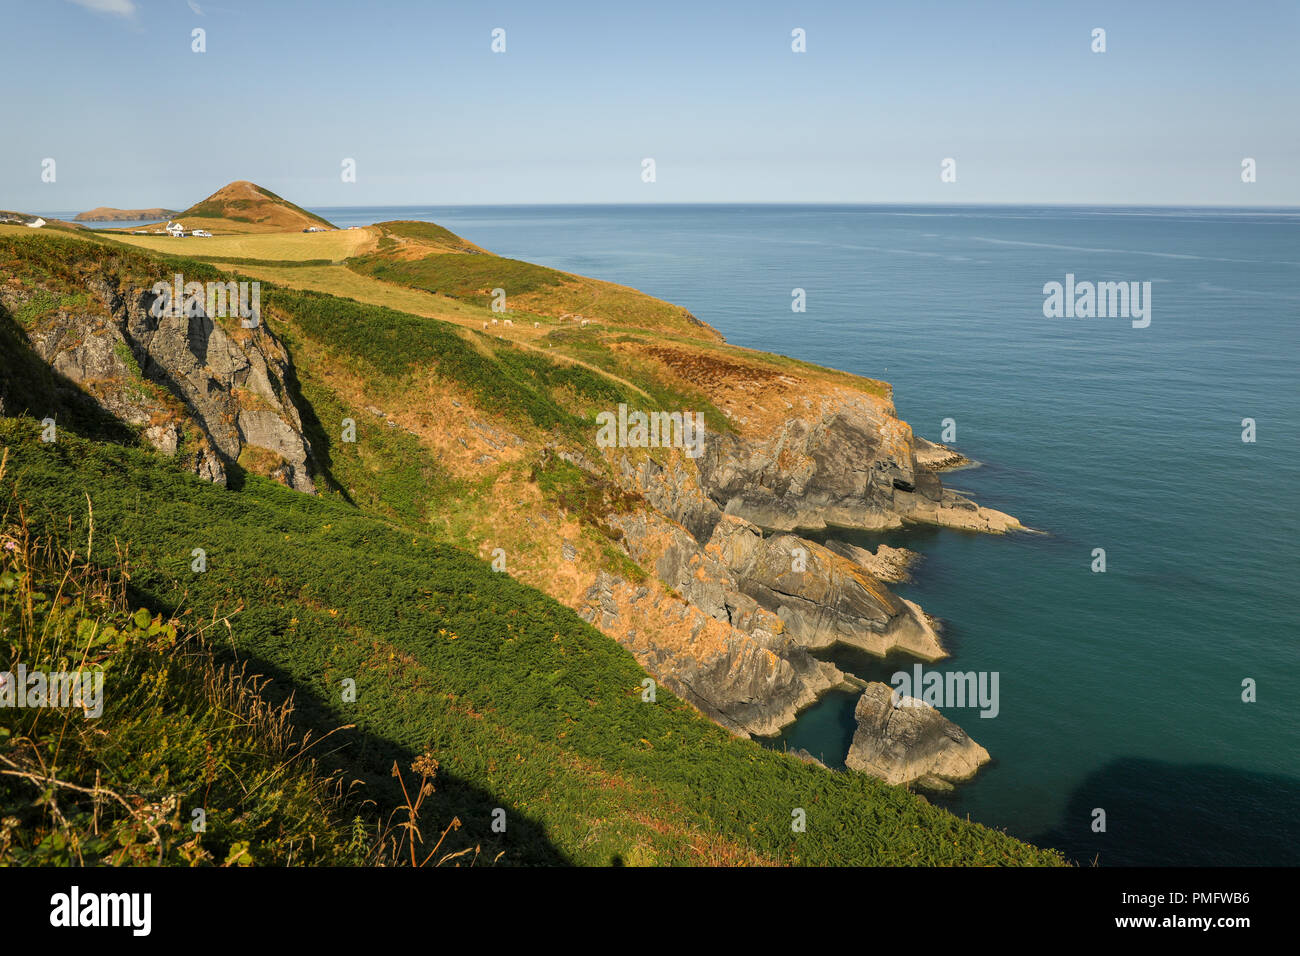 The historic Chapel The Church of the Holy Cross,  Eglwys y Grog ;Welsh: at  Mwnt,  in south Ceredigion, Wales, UK. - Stock Image